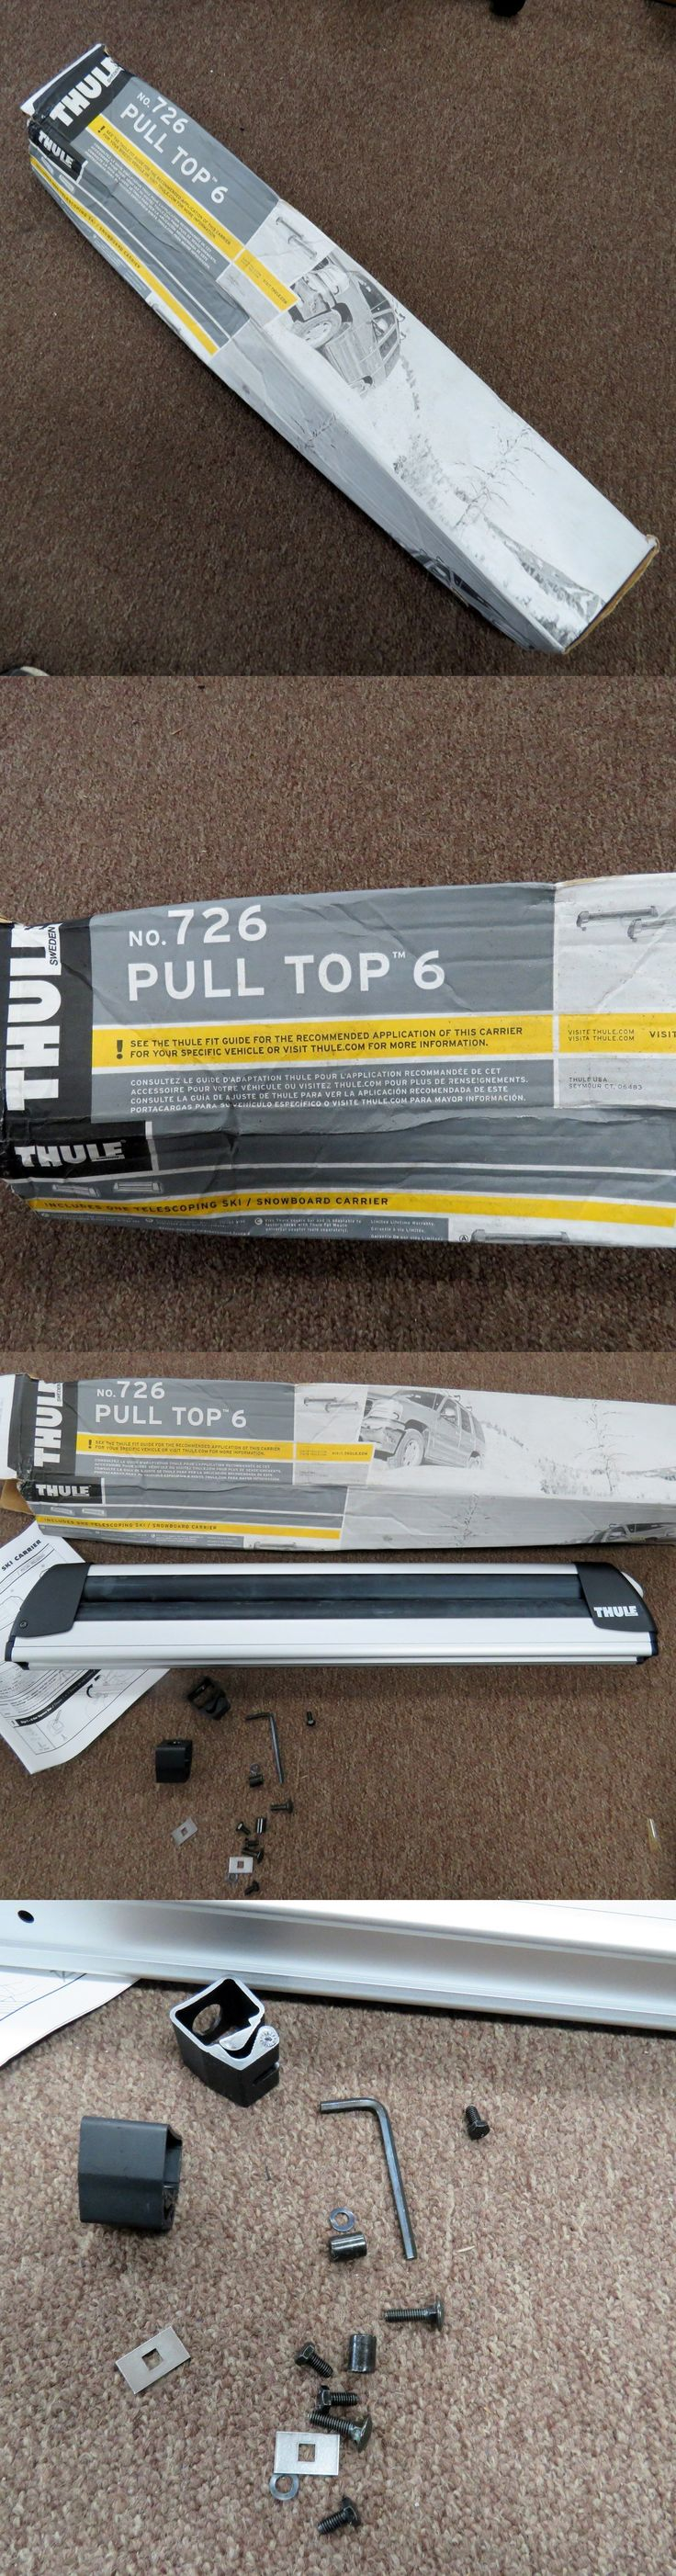 Racks and Carriers 21231: Thule 726 Pull Top 6 Roof Top Ski Carrier Only One Flat Top Carrier -> BUY IT NOW ONLY: $69.99 on eBay!